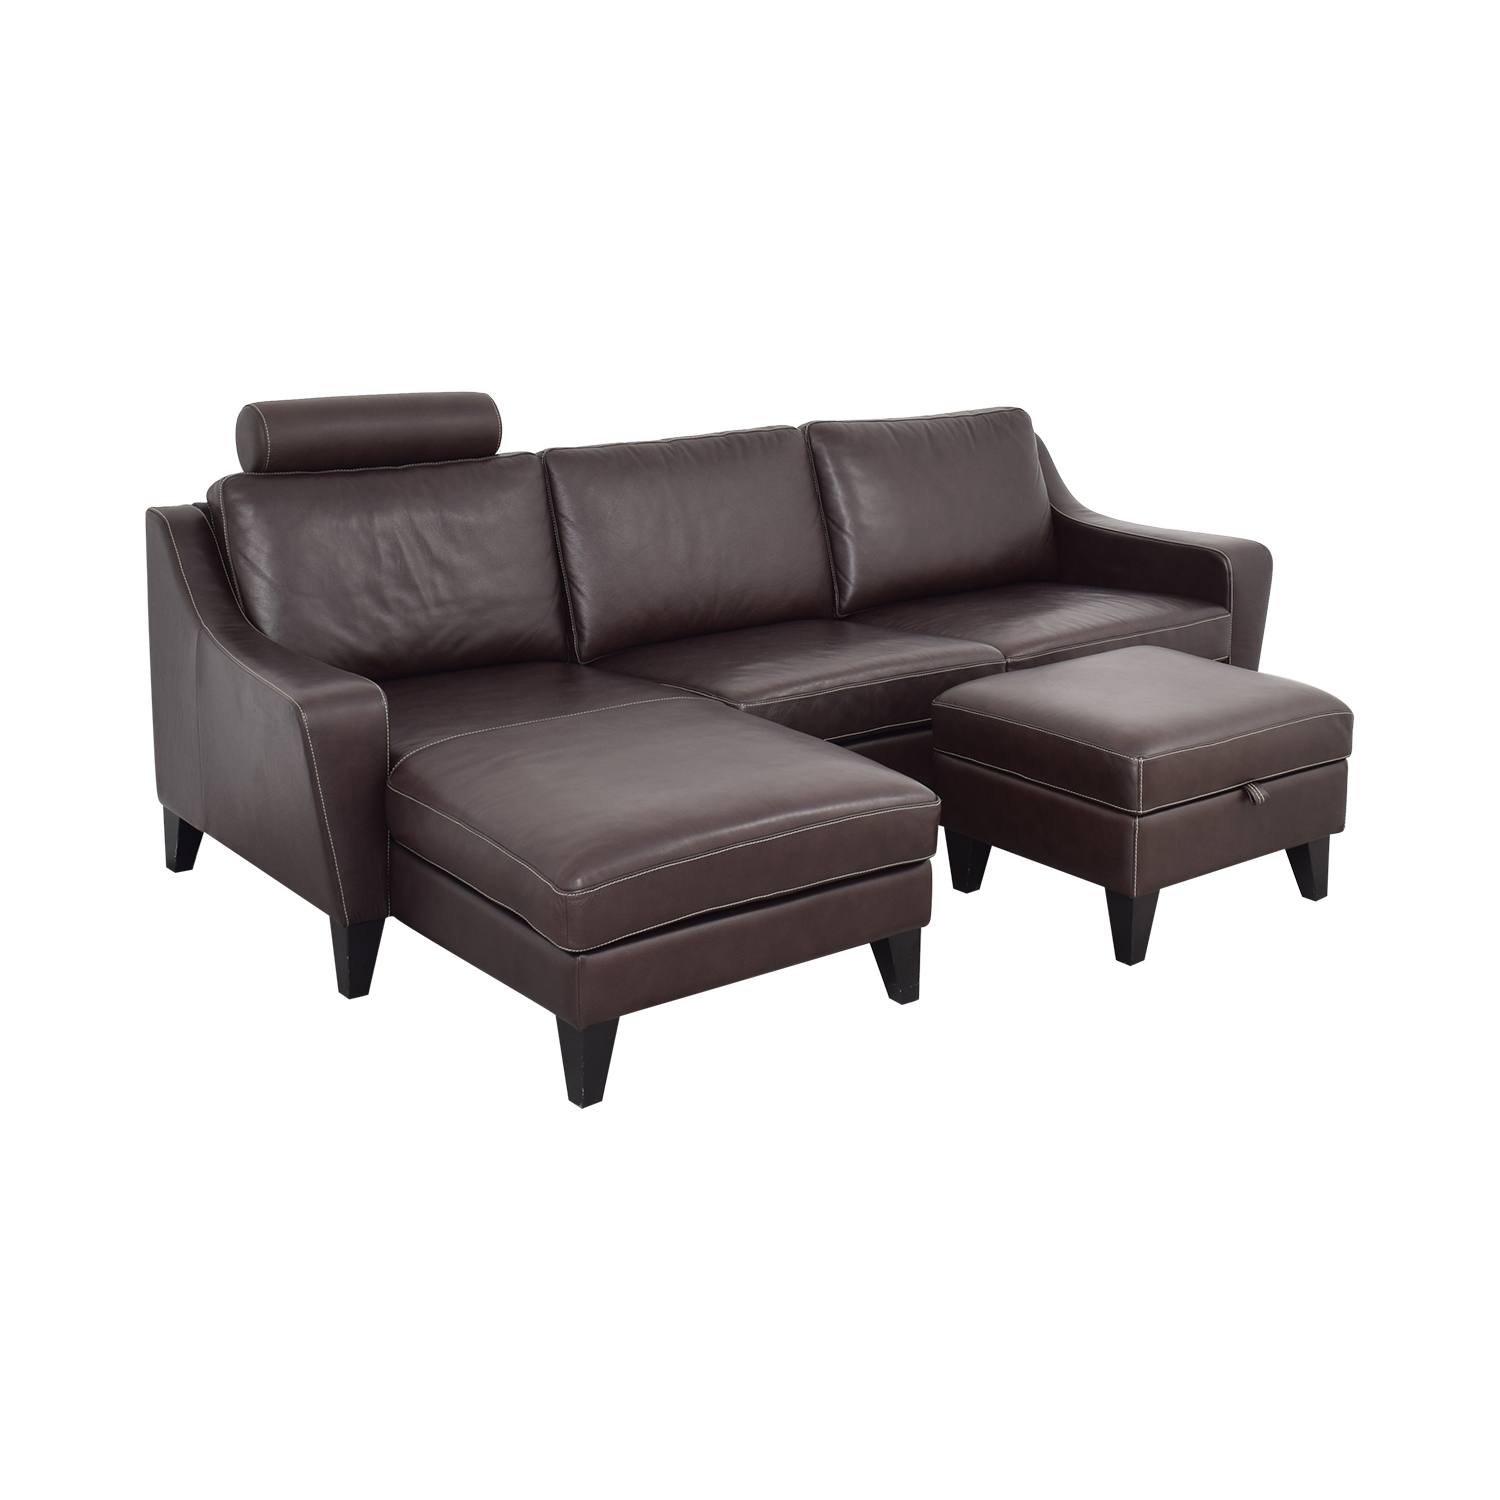 Lind Chaise Sofa with Headrest and Ottoman / Classic Sofas